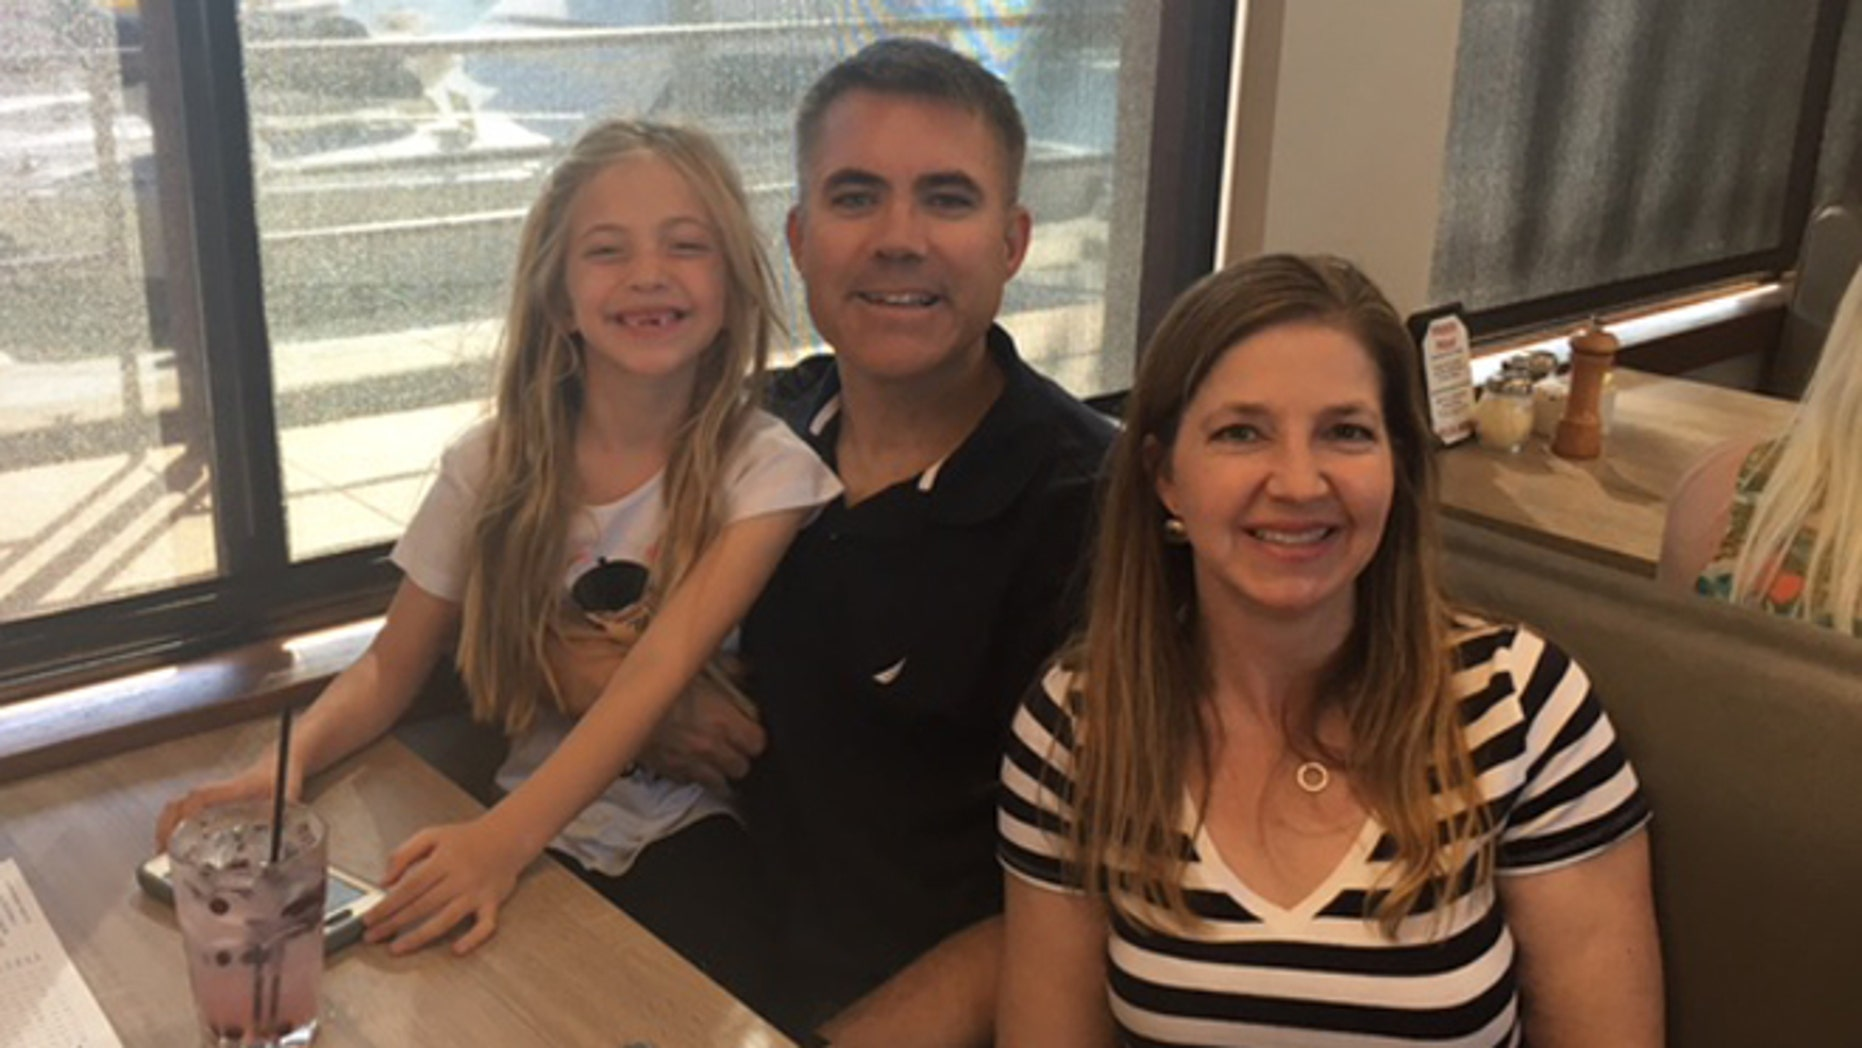 Christian Heller, flanked by daughter Audrey and wife Rachel, is grateful for Audrey's piano lessons provided by Our Military Kids.